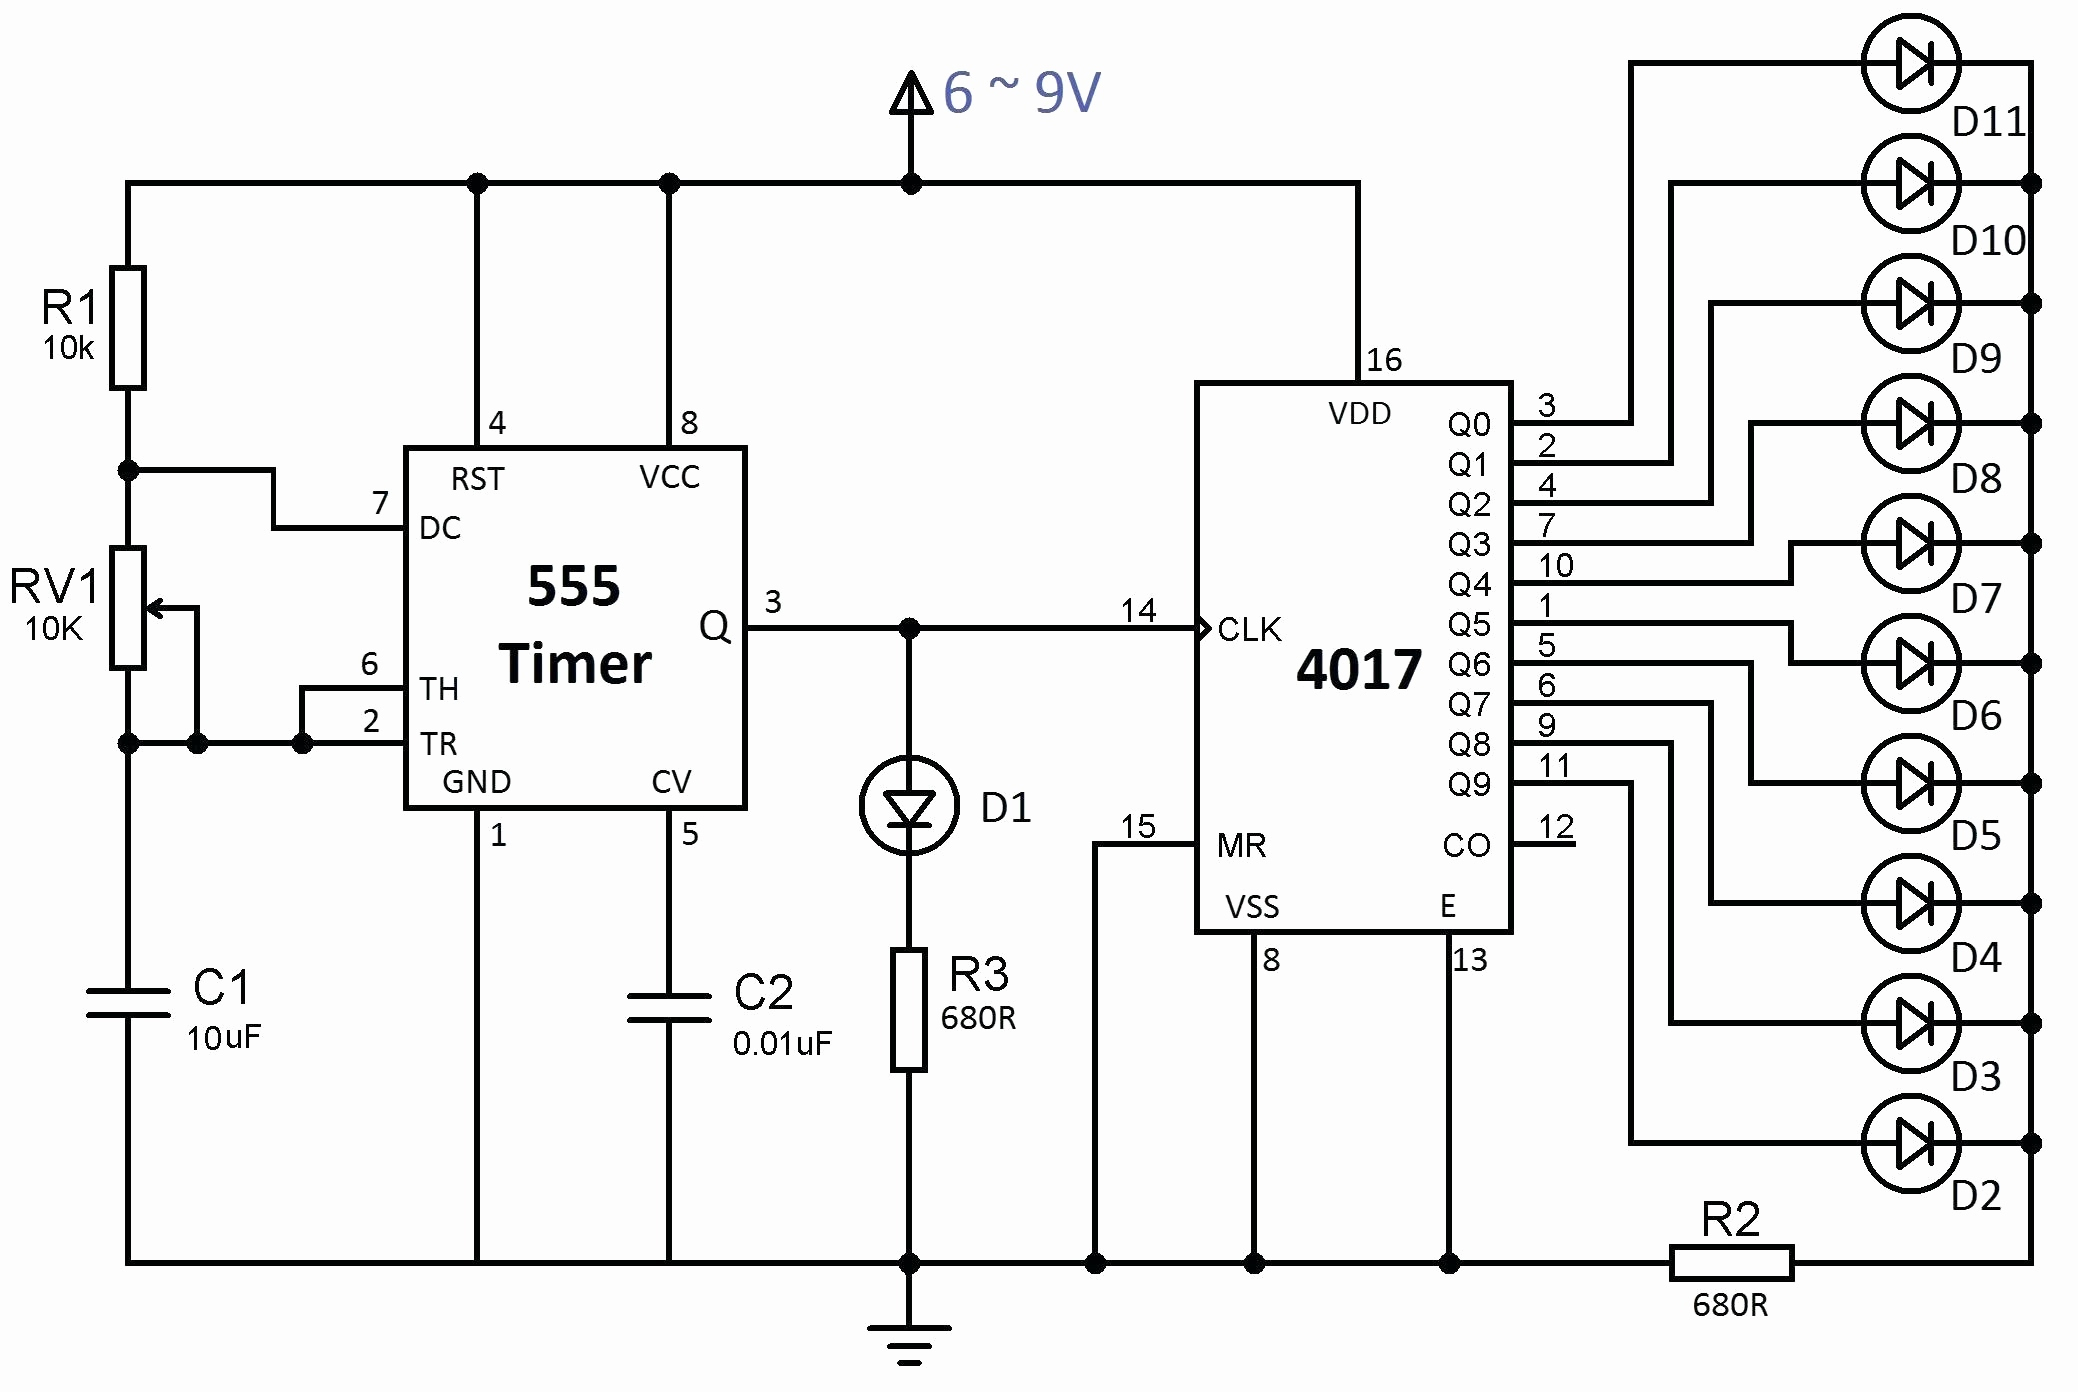 Single Phase Capacitor Start Capacitor Run Motor Wiring Diagram - Capacitor Start Capacitor Run Motor Wiring Diagram